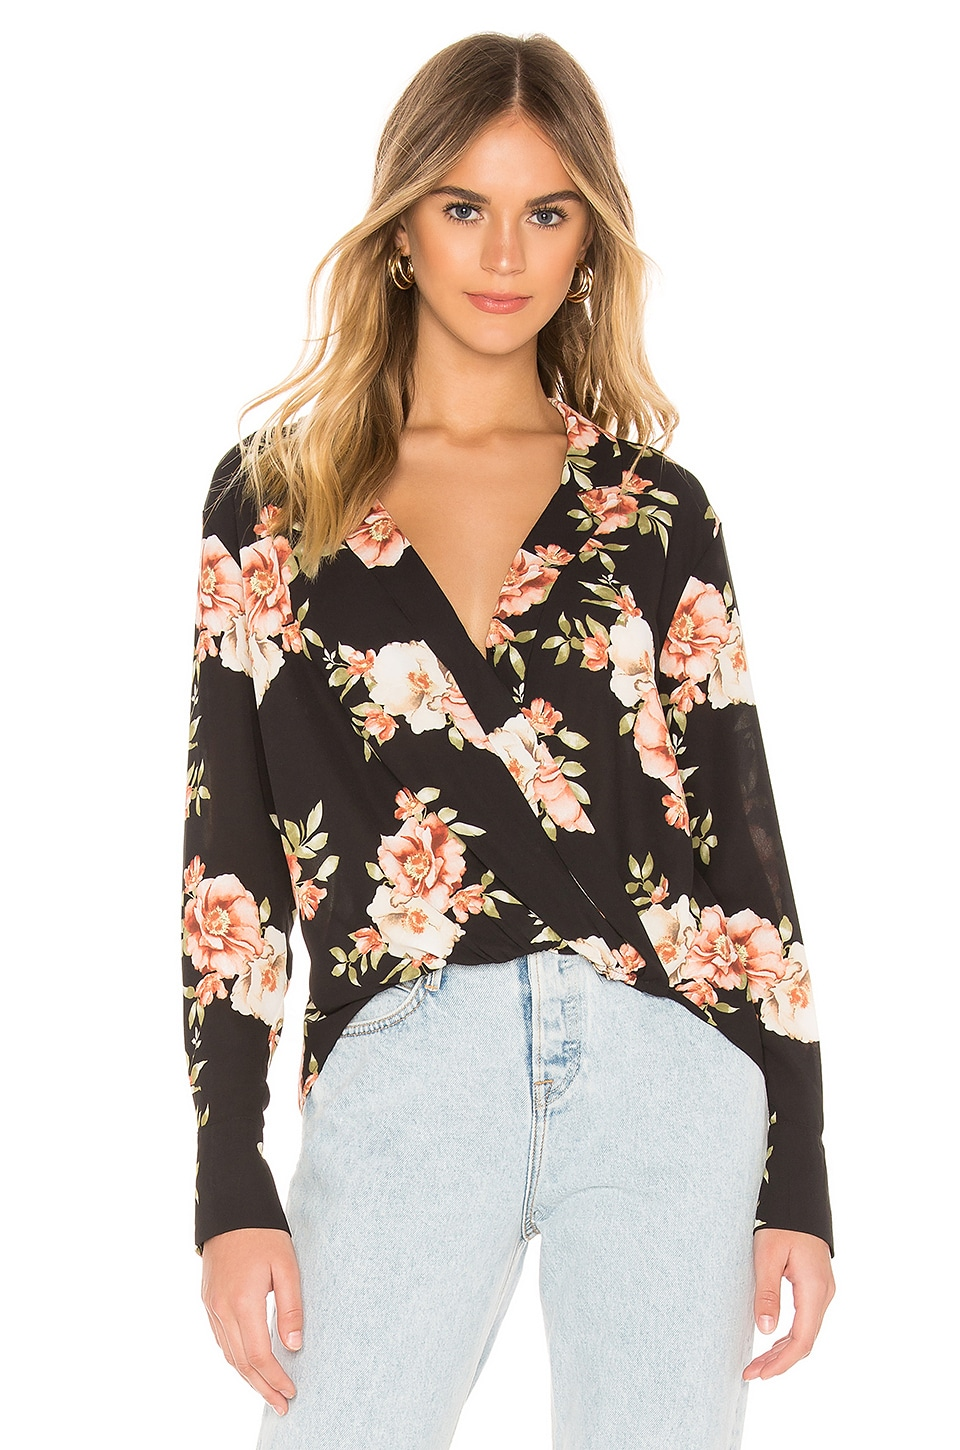 LIKELY Sophia Floral Mimi Top en Black Multi